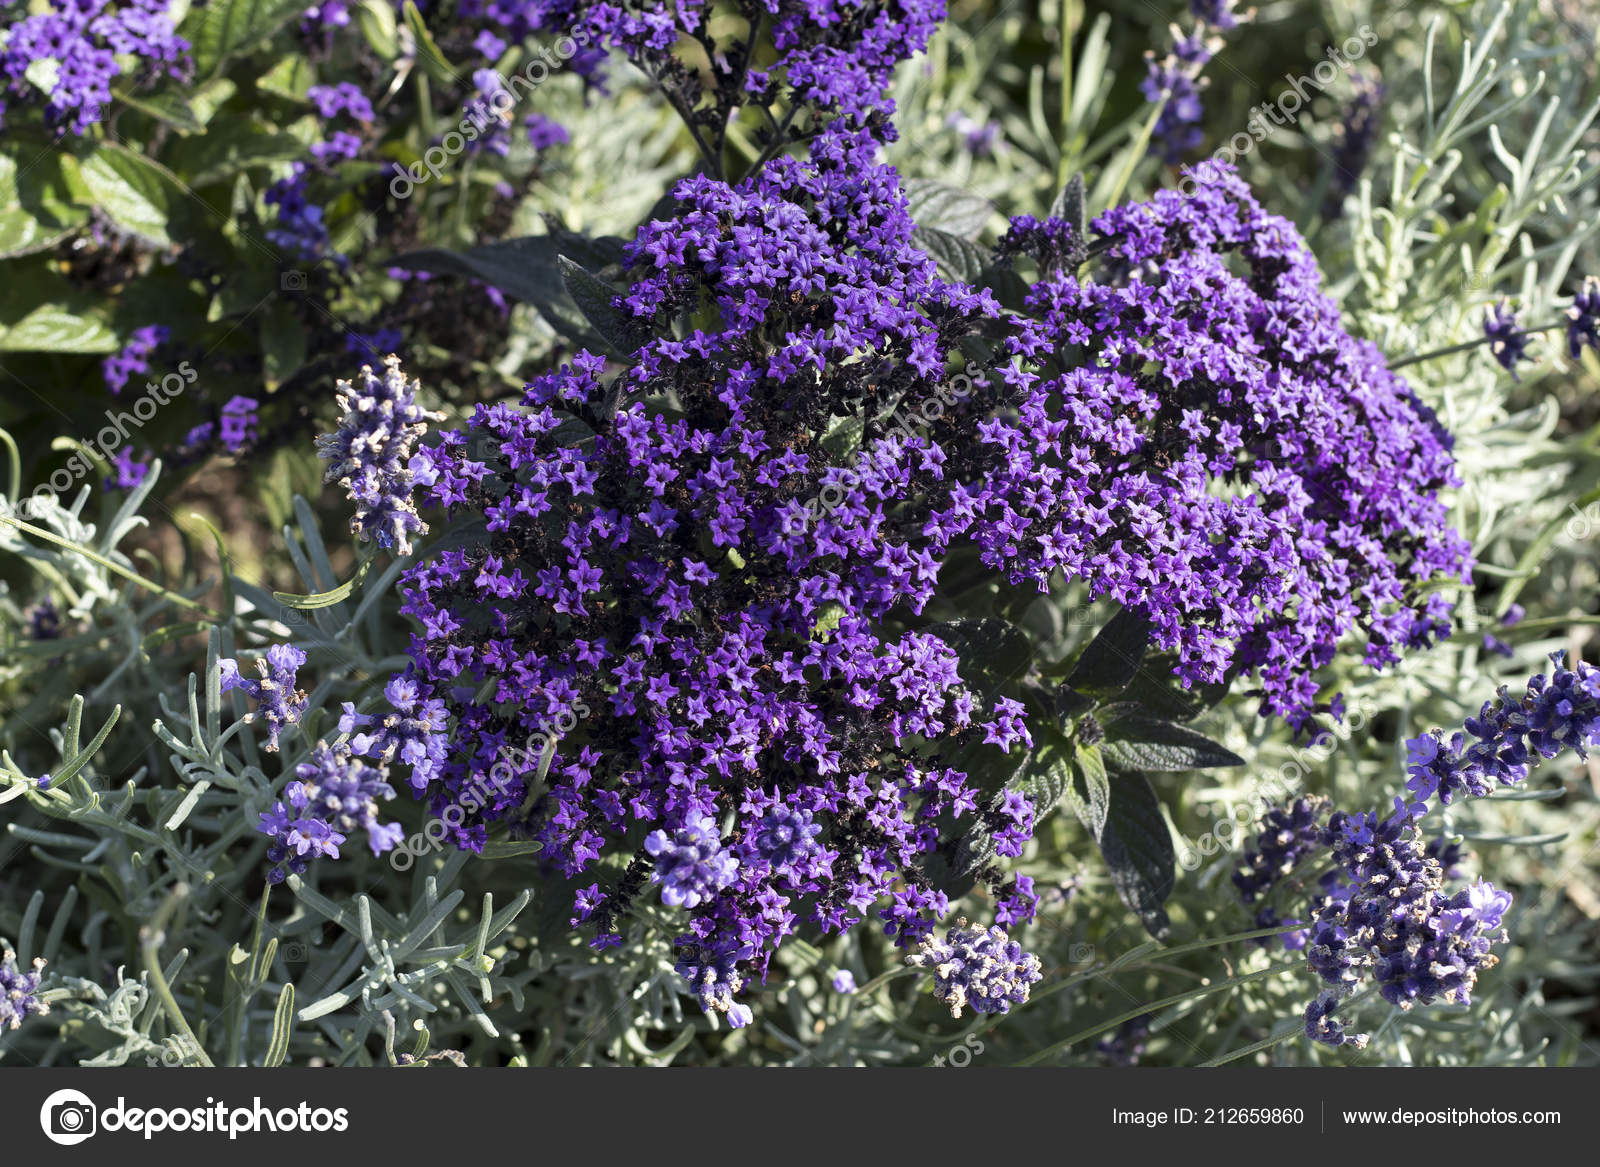 The natural floral background with phlox subulata emerald blue creeping phlox star shaped bright lavender blue flowers groundcover photo by elenarostunova izmirmasajfo